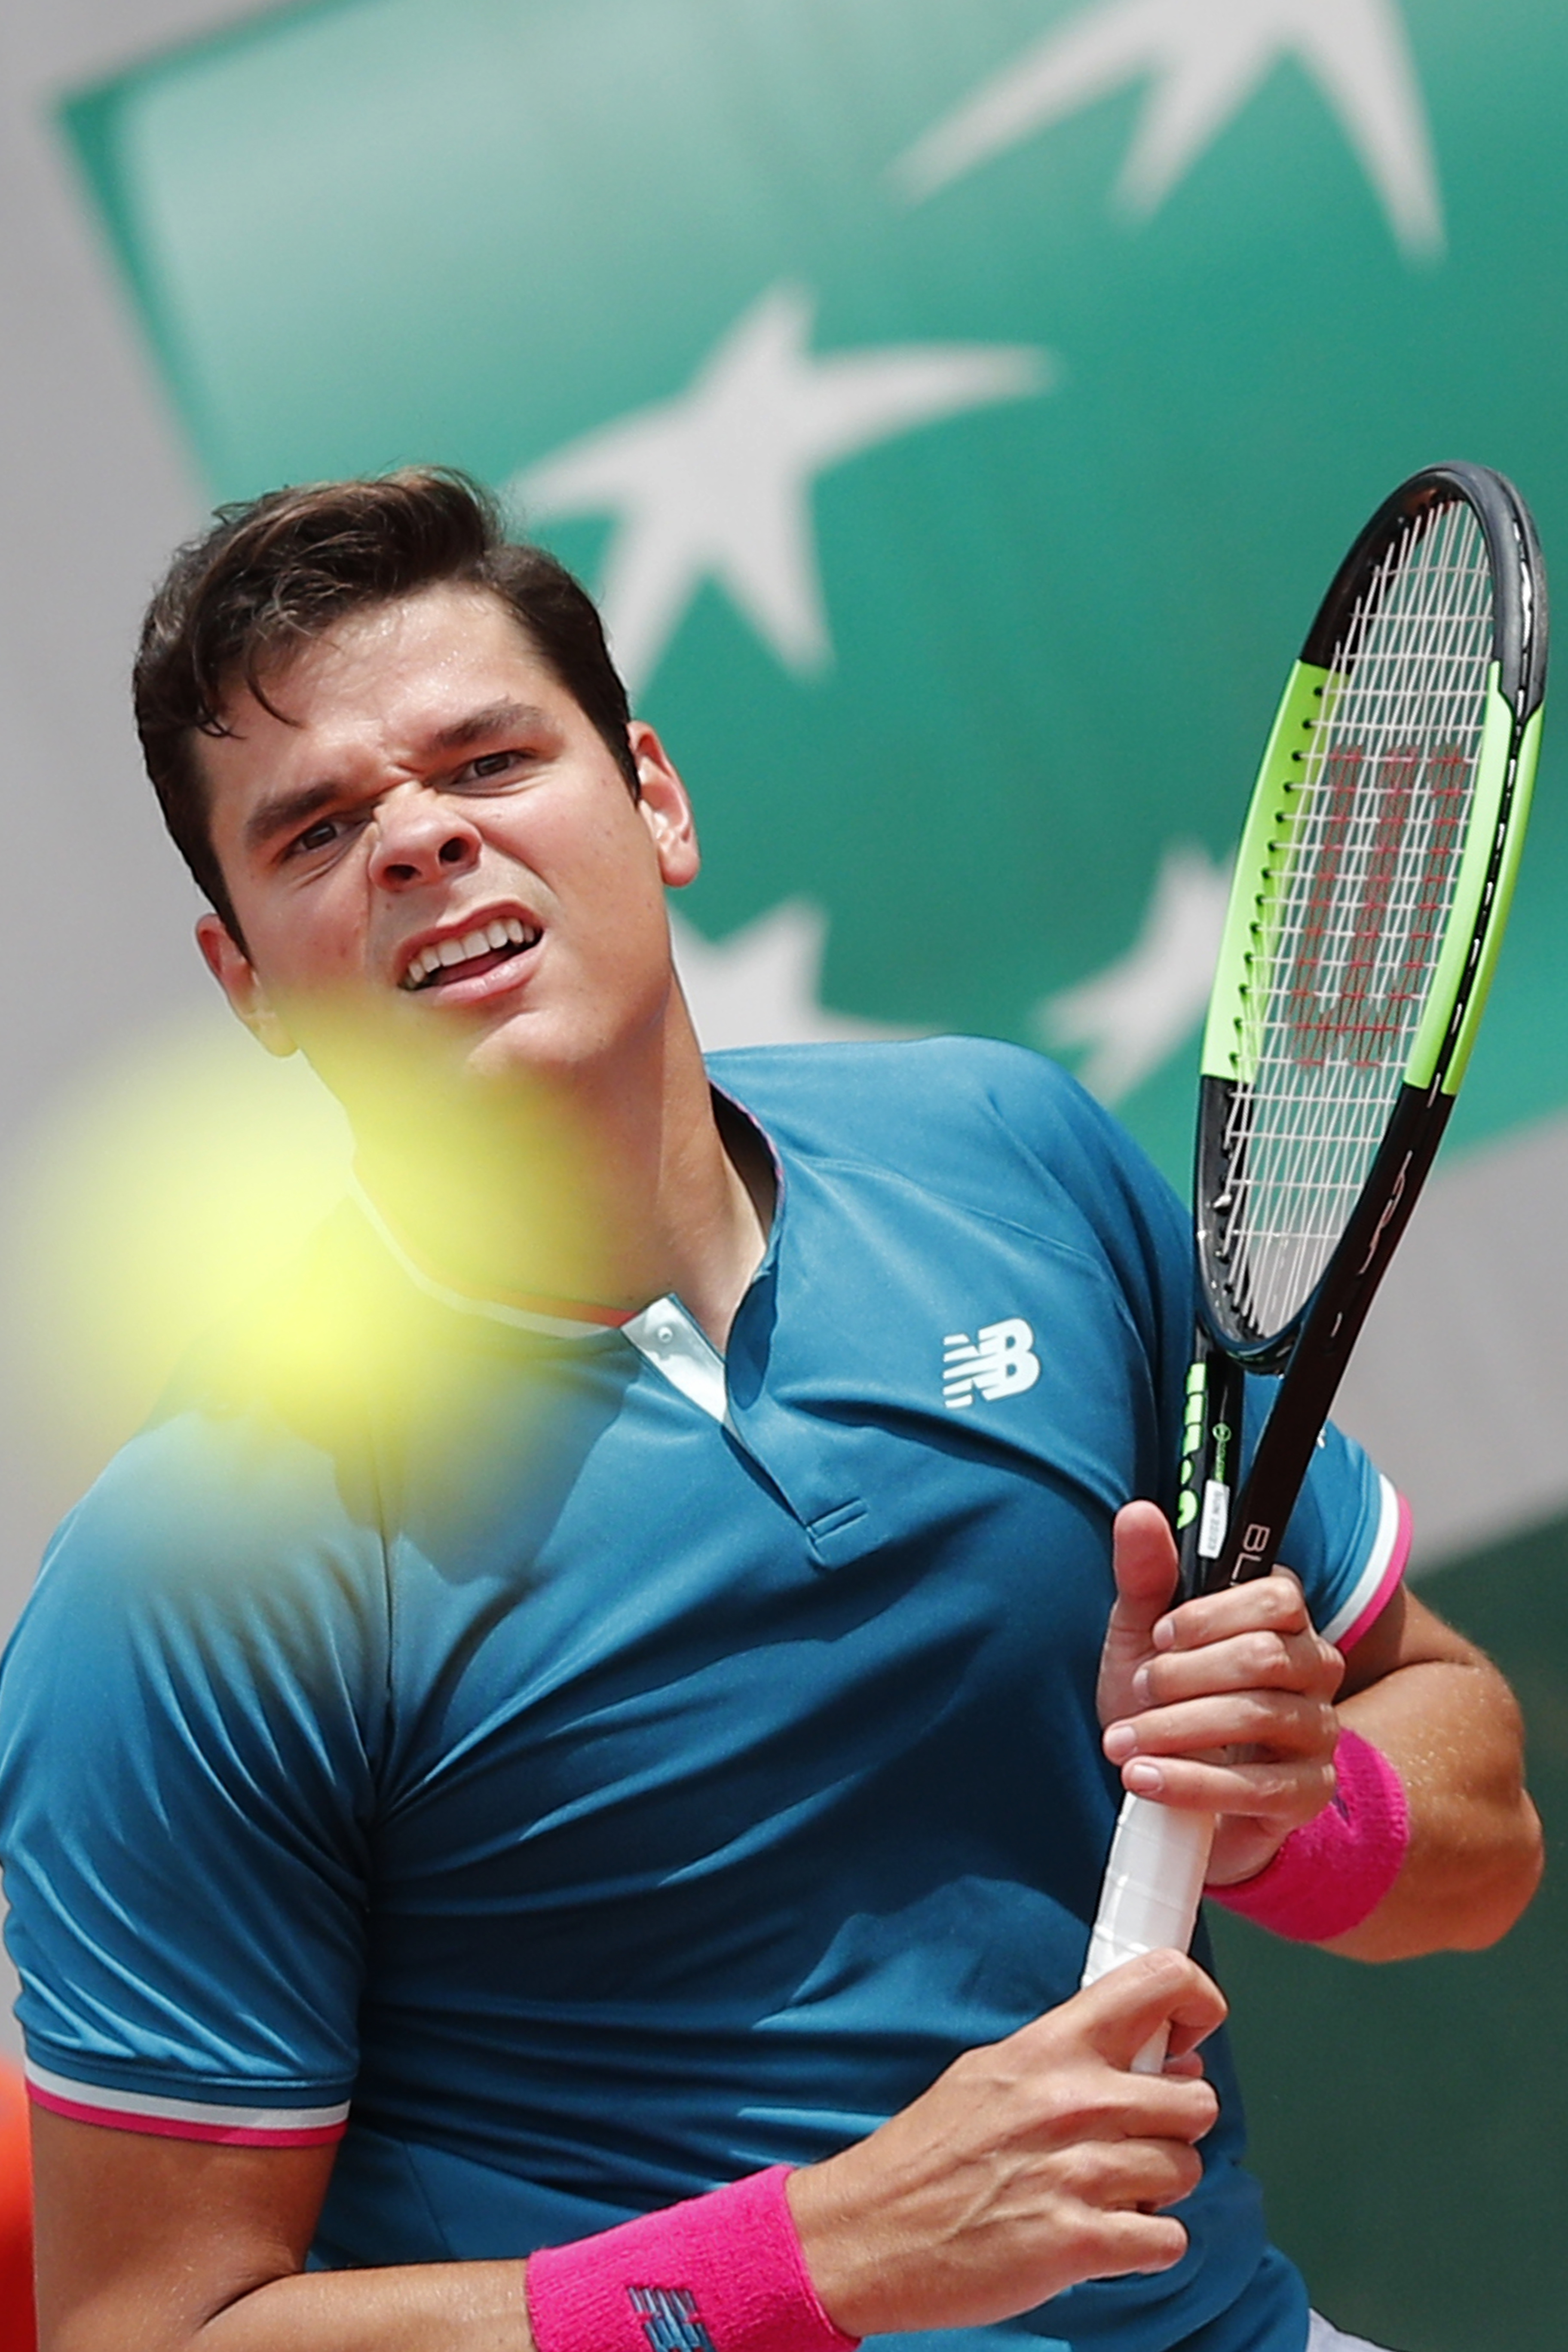 Canada's Milos Raonic follows the ball as he returns against Spain's Pablo Carreno Busta during their fourth round match of the French Open tennis tournament at the Roland Garros stadium, in Paris, France. Sunday, June 4, 2017. (AP Photo/Christophe Ena)